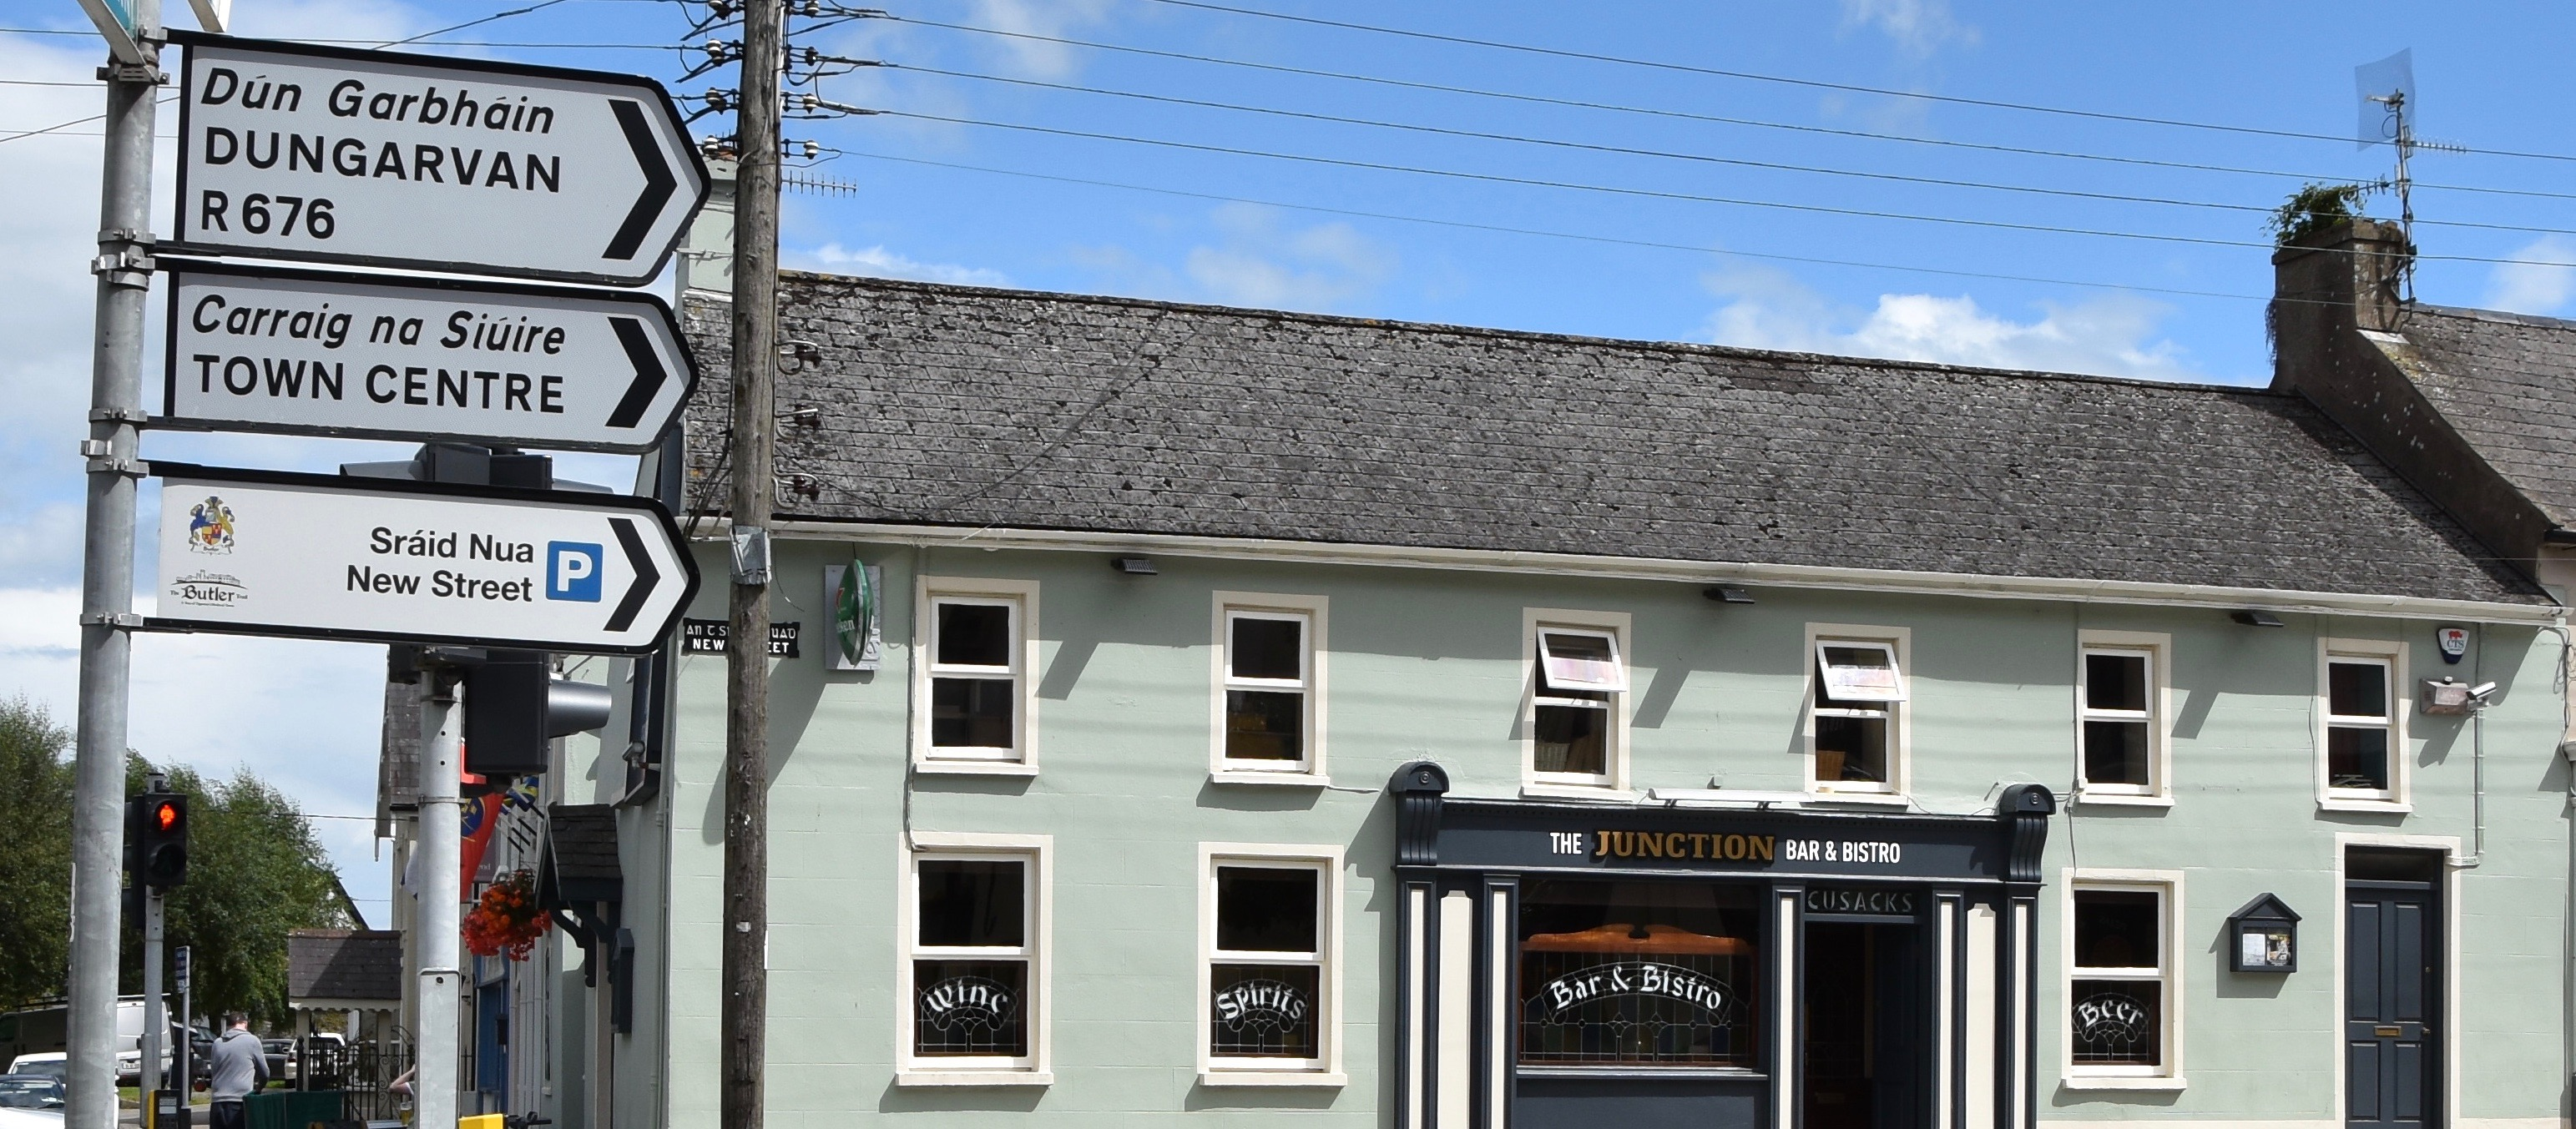 Airbnb | Carrick-On-Suir - Holiday Rentals & Places to Stay